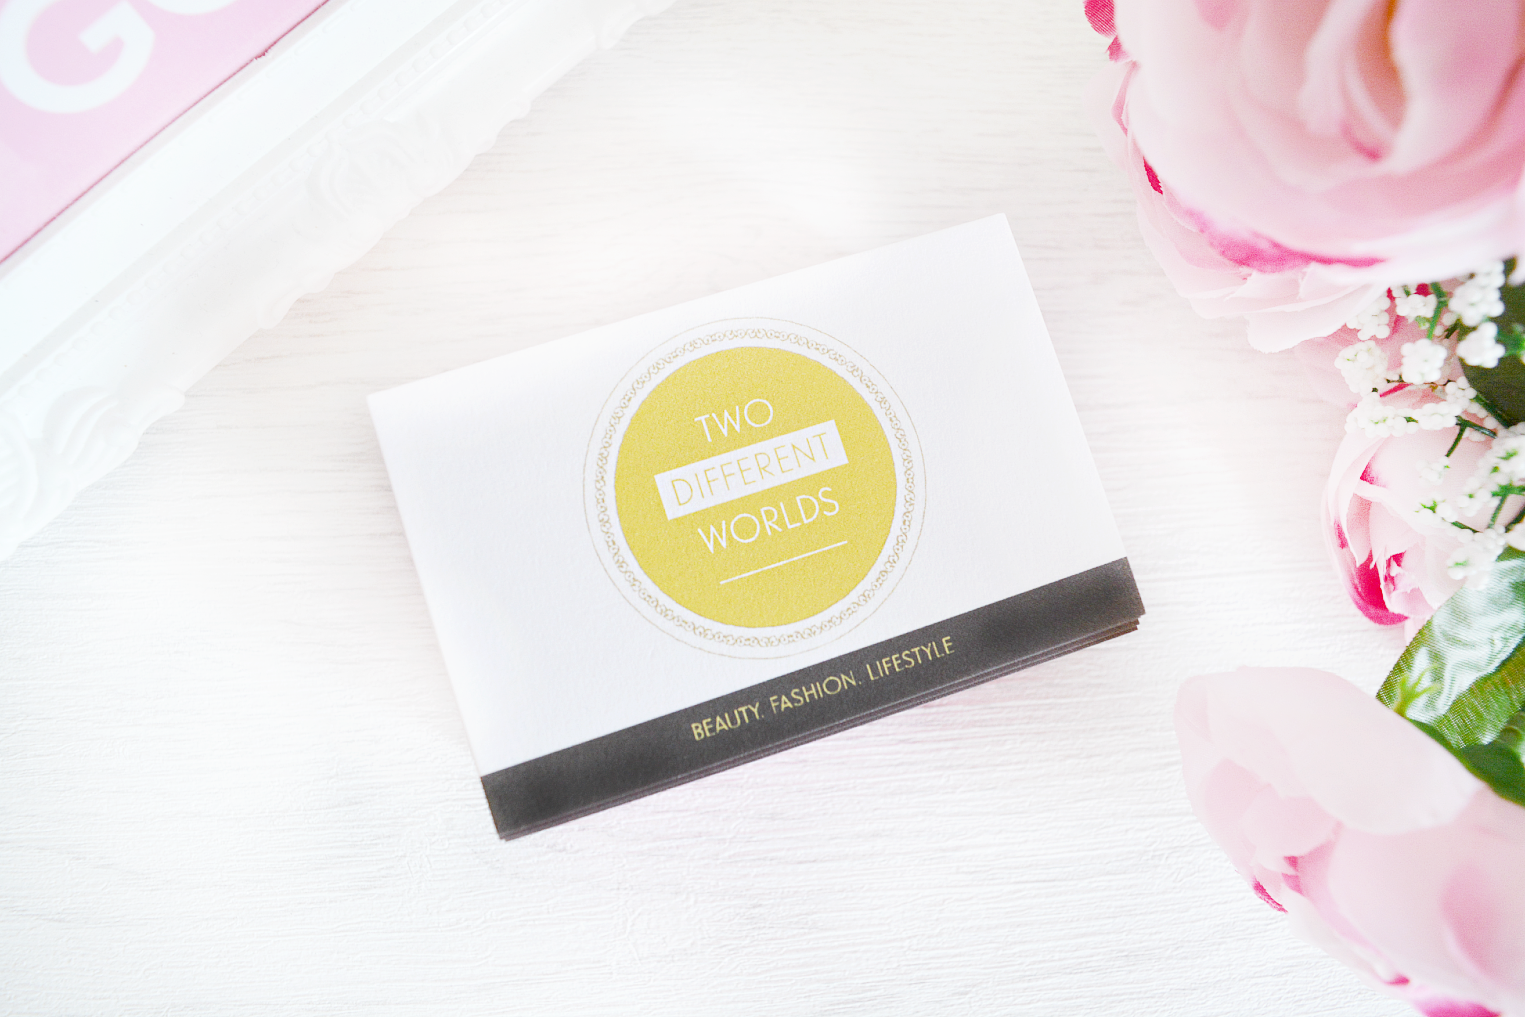 Blog Business Cards & MOO Review | Two Different Worlds